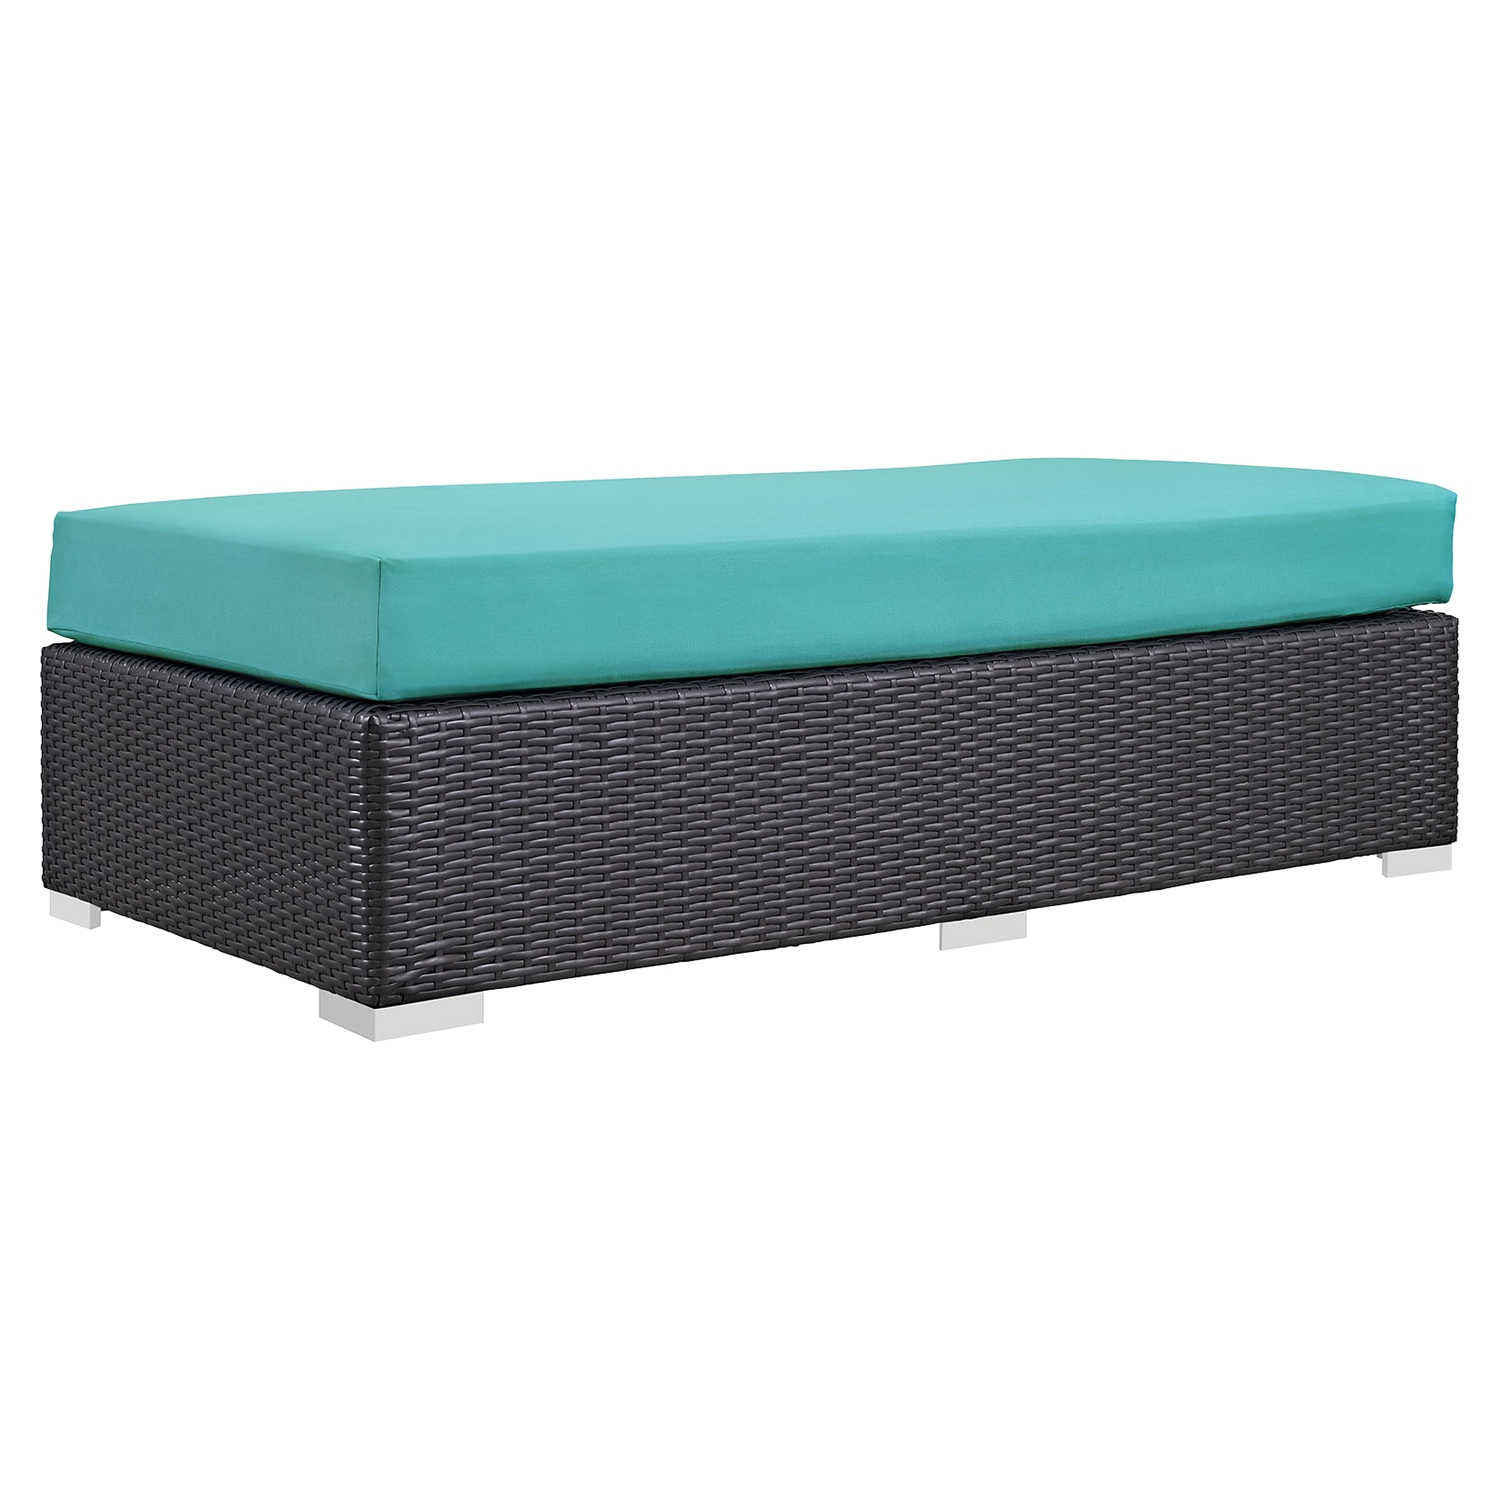 Convene Outdoor Patio Fabric Rectangle Ottoman - EEI-1847-EXP